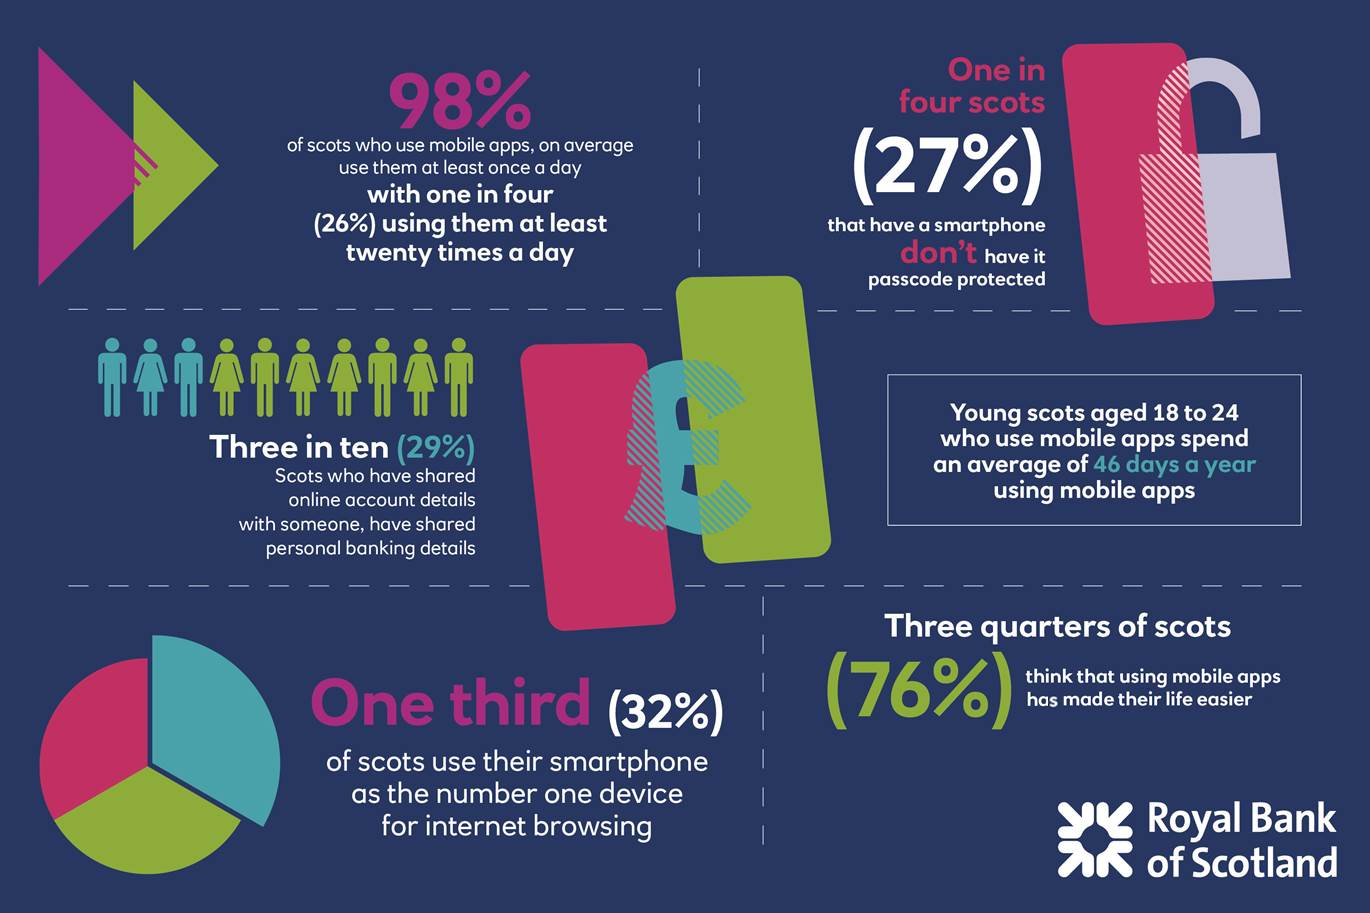 Scots embrace benefits of mobile apps but are 'startlingly